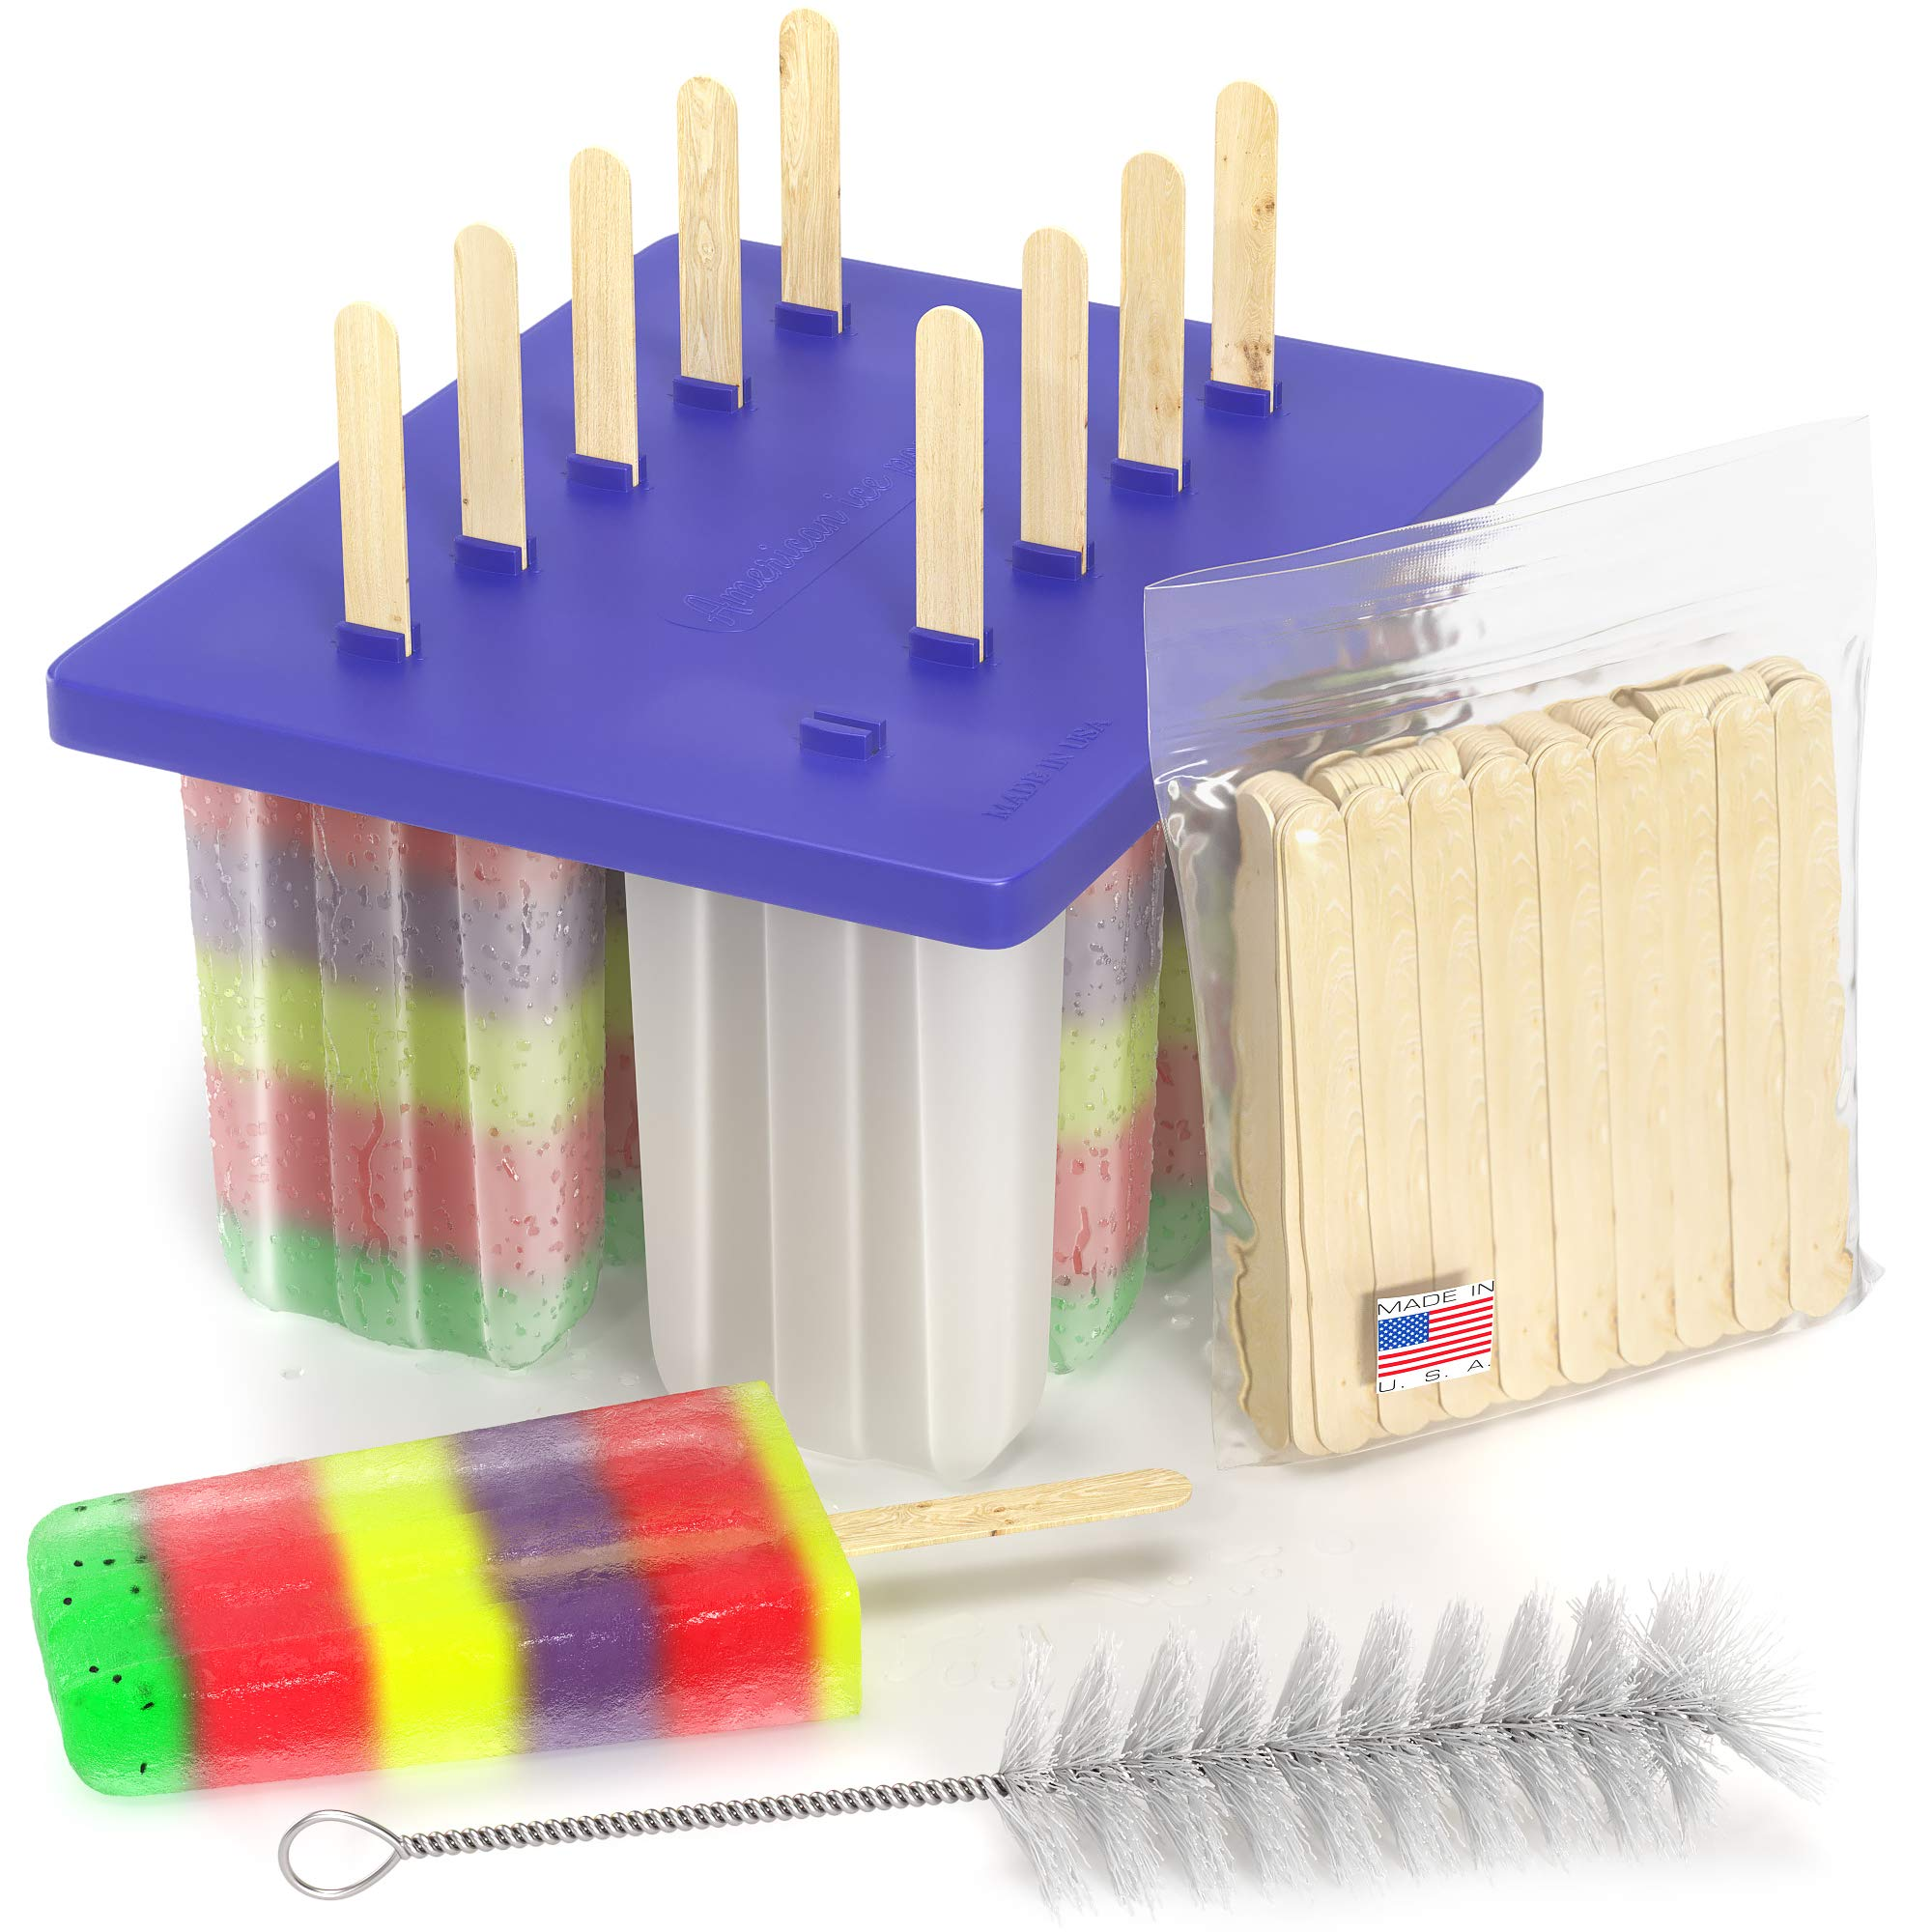 American Ice Pop Maker - Frozen Popsicle Mold - Set of 10 BPA Free Plastic Molds + 50 Wood Sticks & Cleaning Brush (Classic-10 + 200 Sticks, Blue) by American Ice Pops